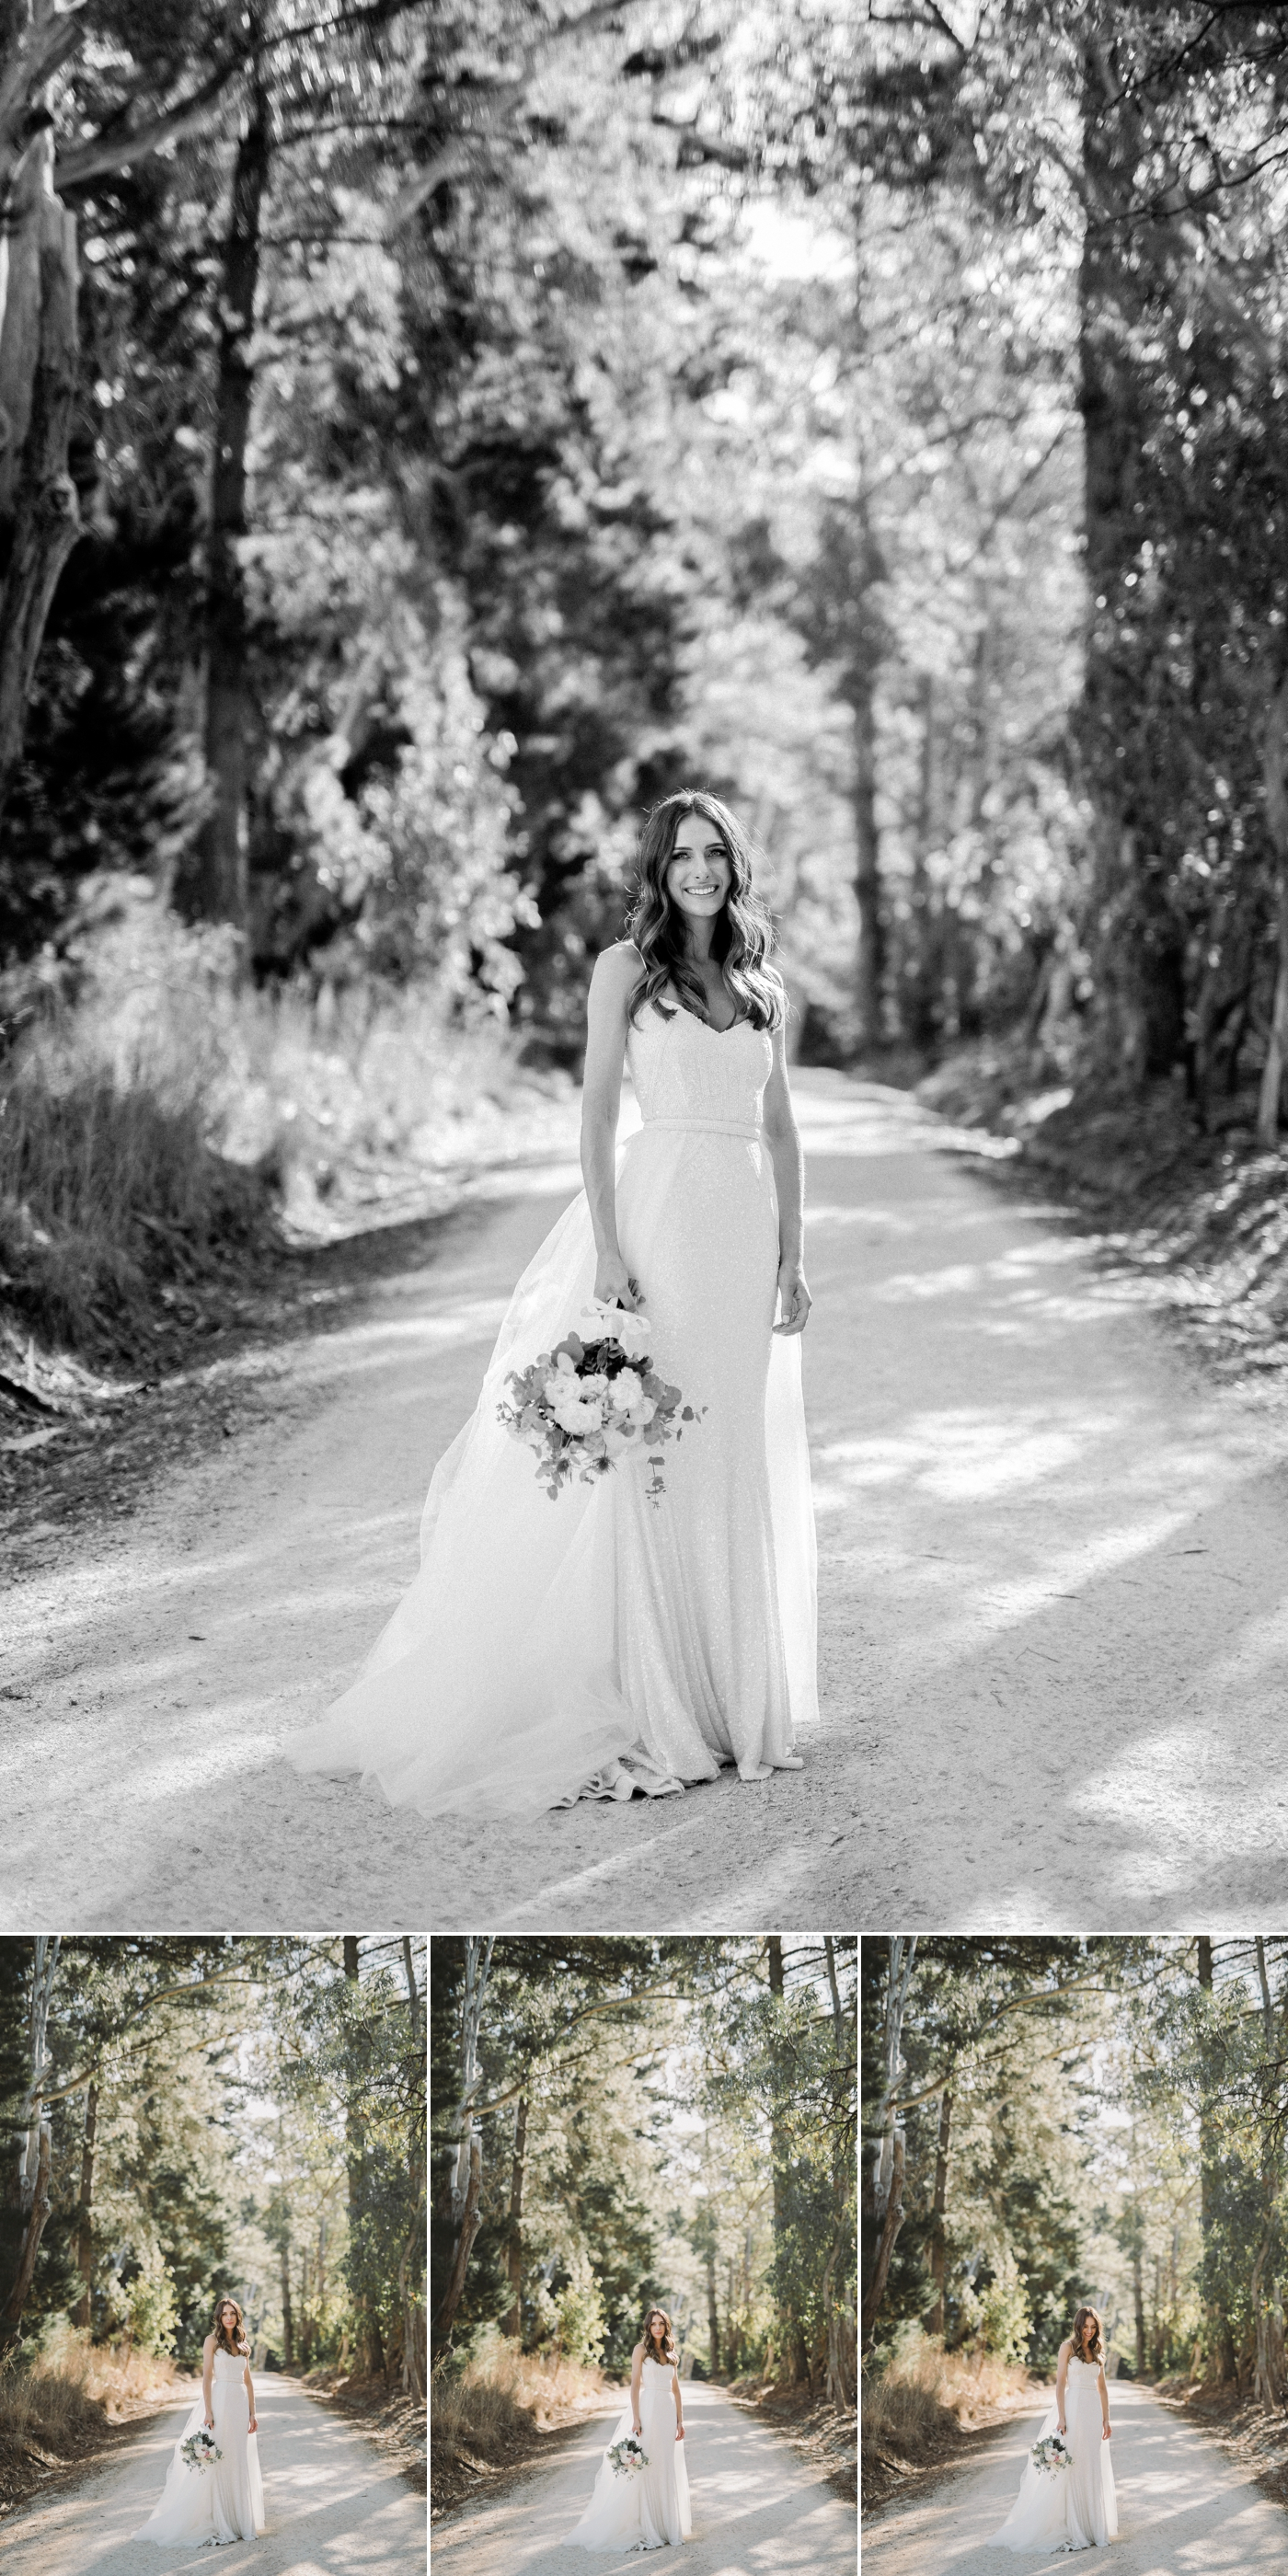 Steph & Quinn - Natural Wedding Photographer in Adelaide - Beautiful Wedding Photography - Simple, modern and natural wedding photographer - Katherine Schultz - www.katherineschultzphotography.com_0038.jpg